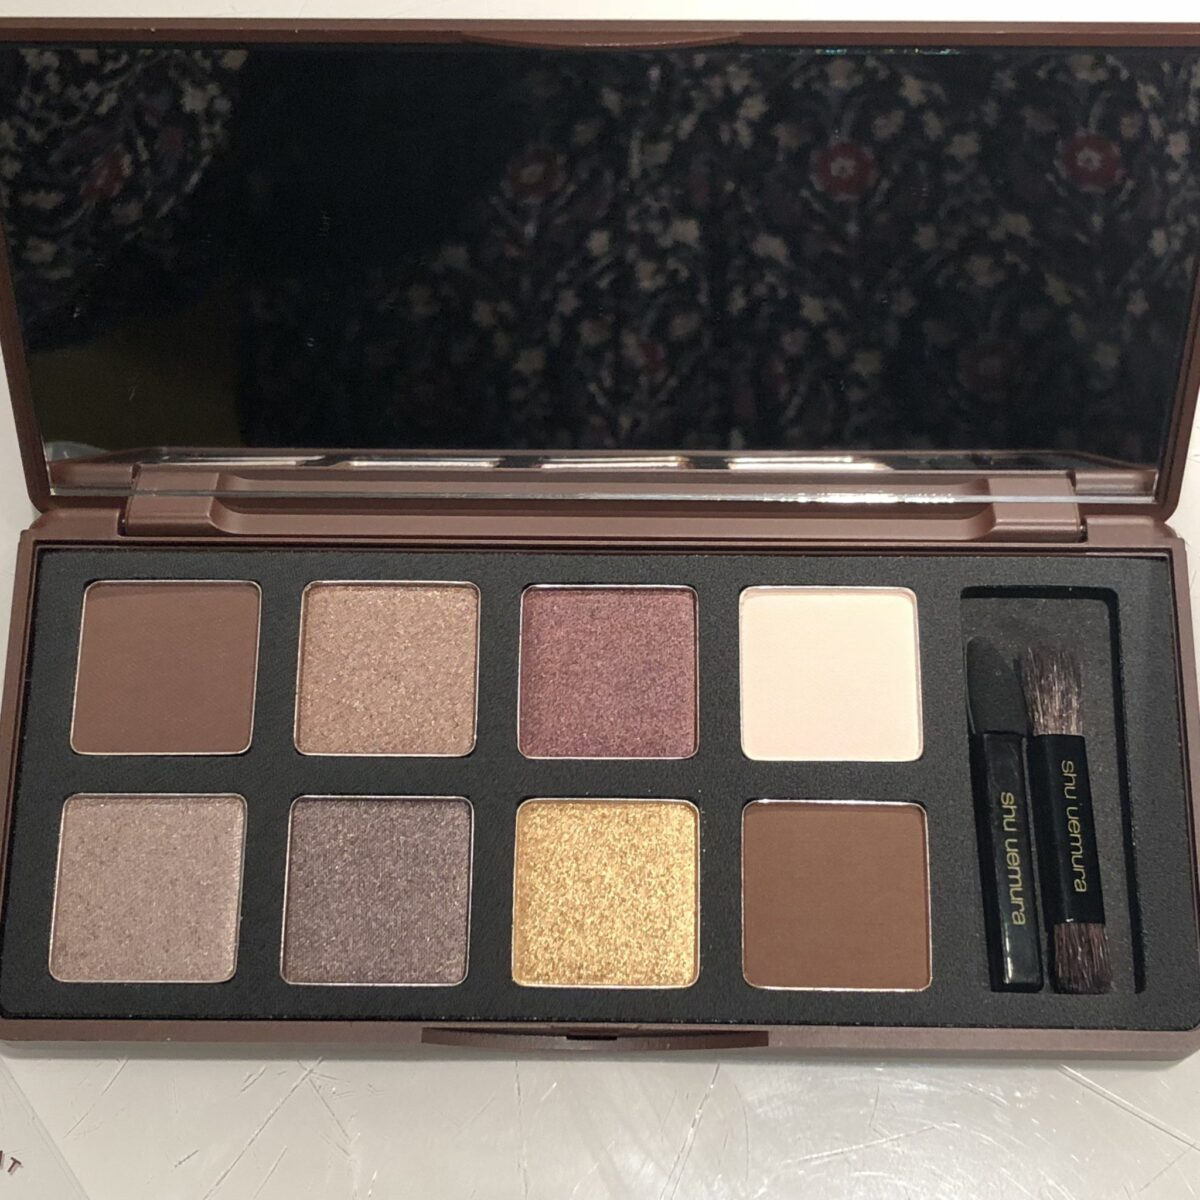 LARGE MIRROR INCLUDED IN SHU UEMURA GANACHE 7 PRALINE EYE PALETTE DARK CACAO